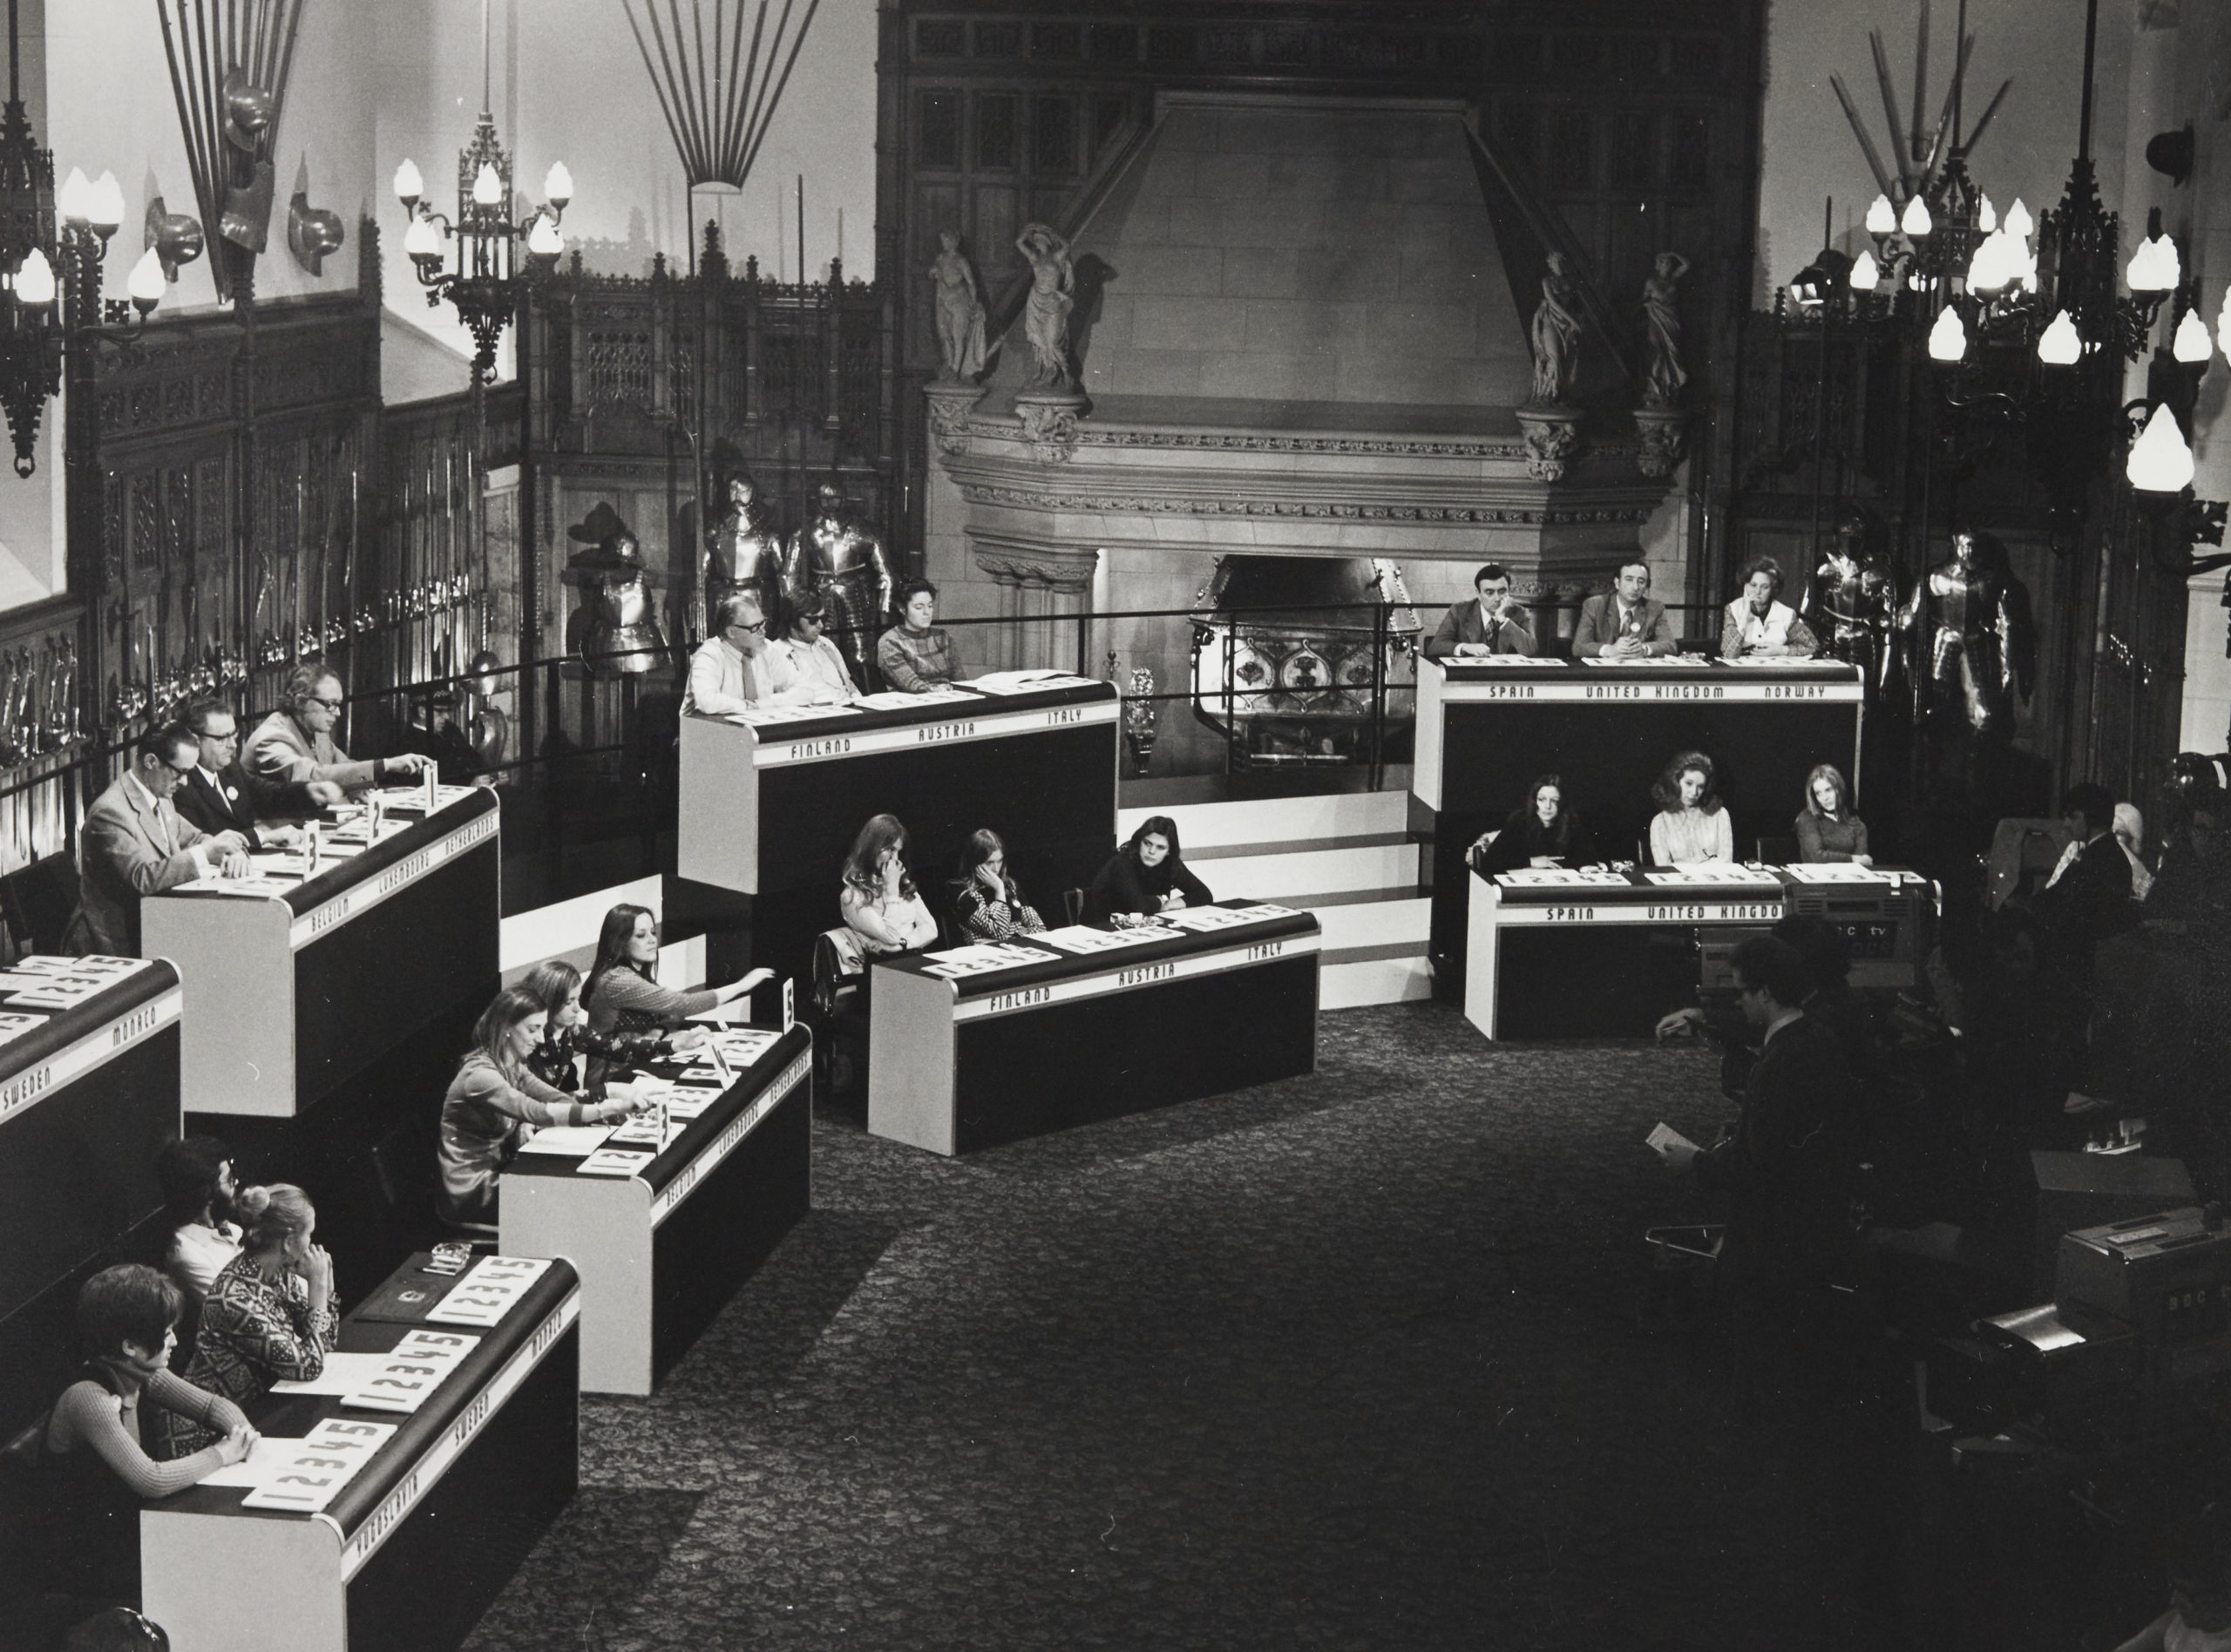 rows of desks with three people at each in a room with suits of armour at the back